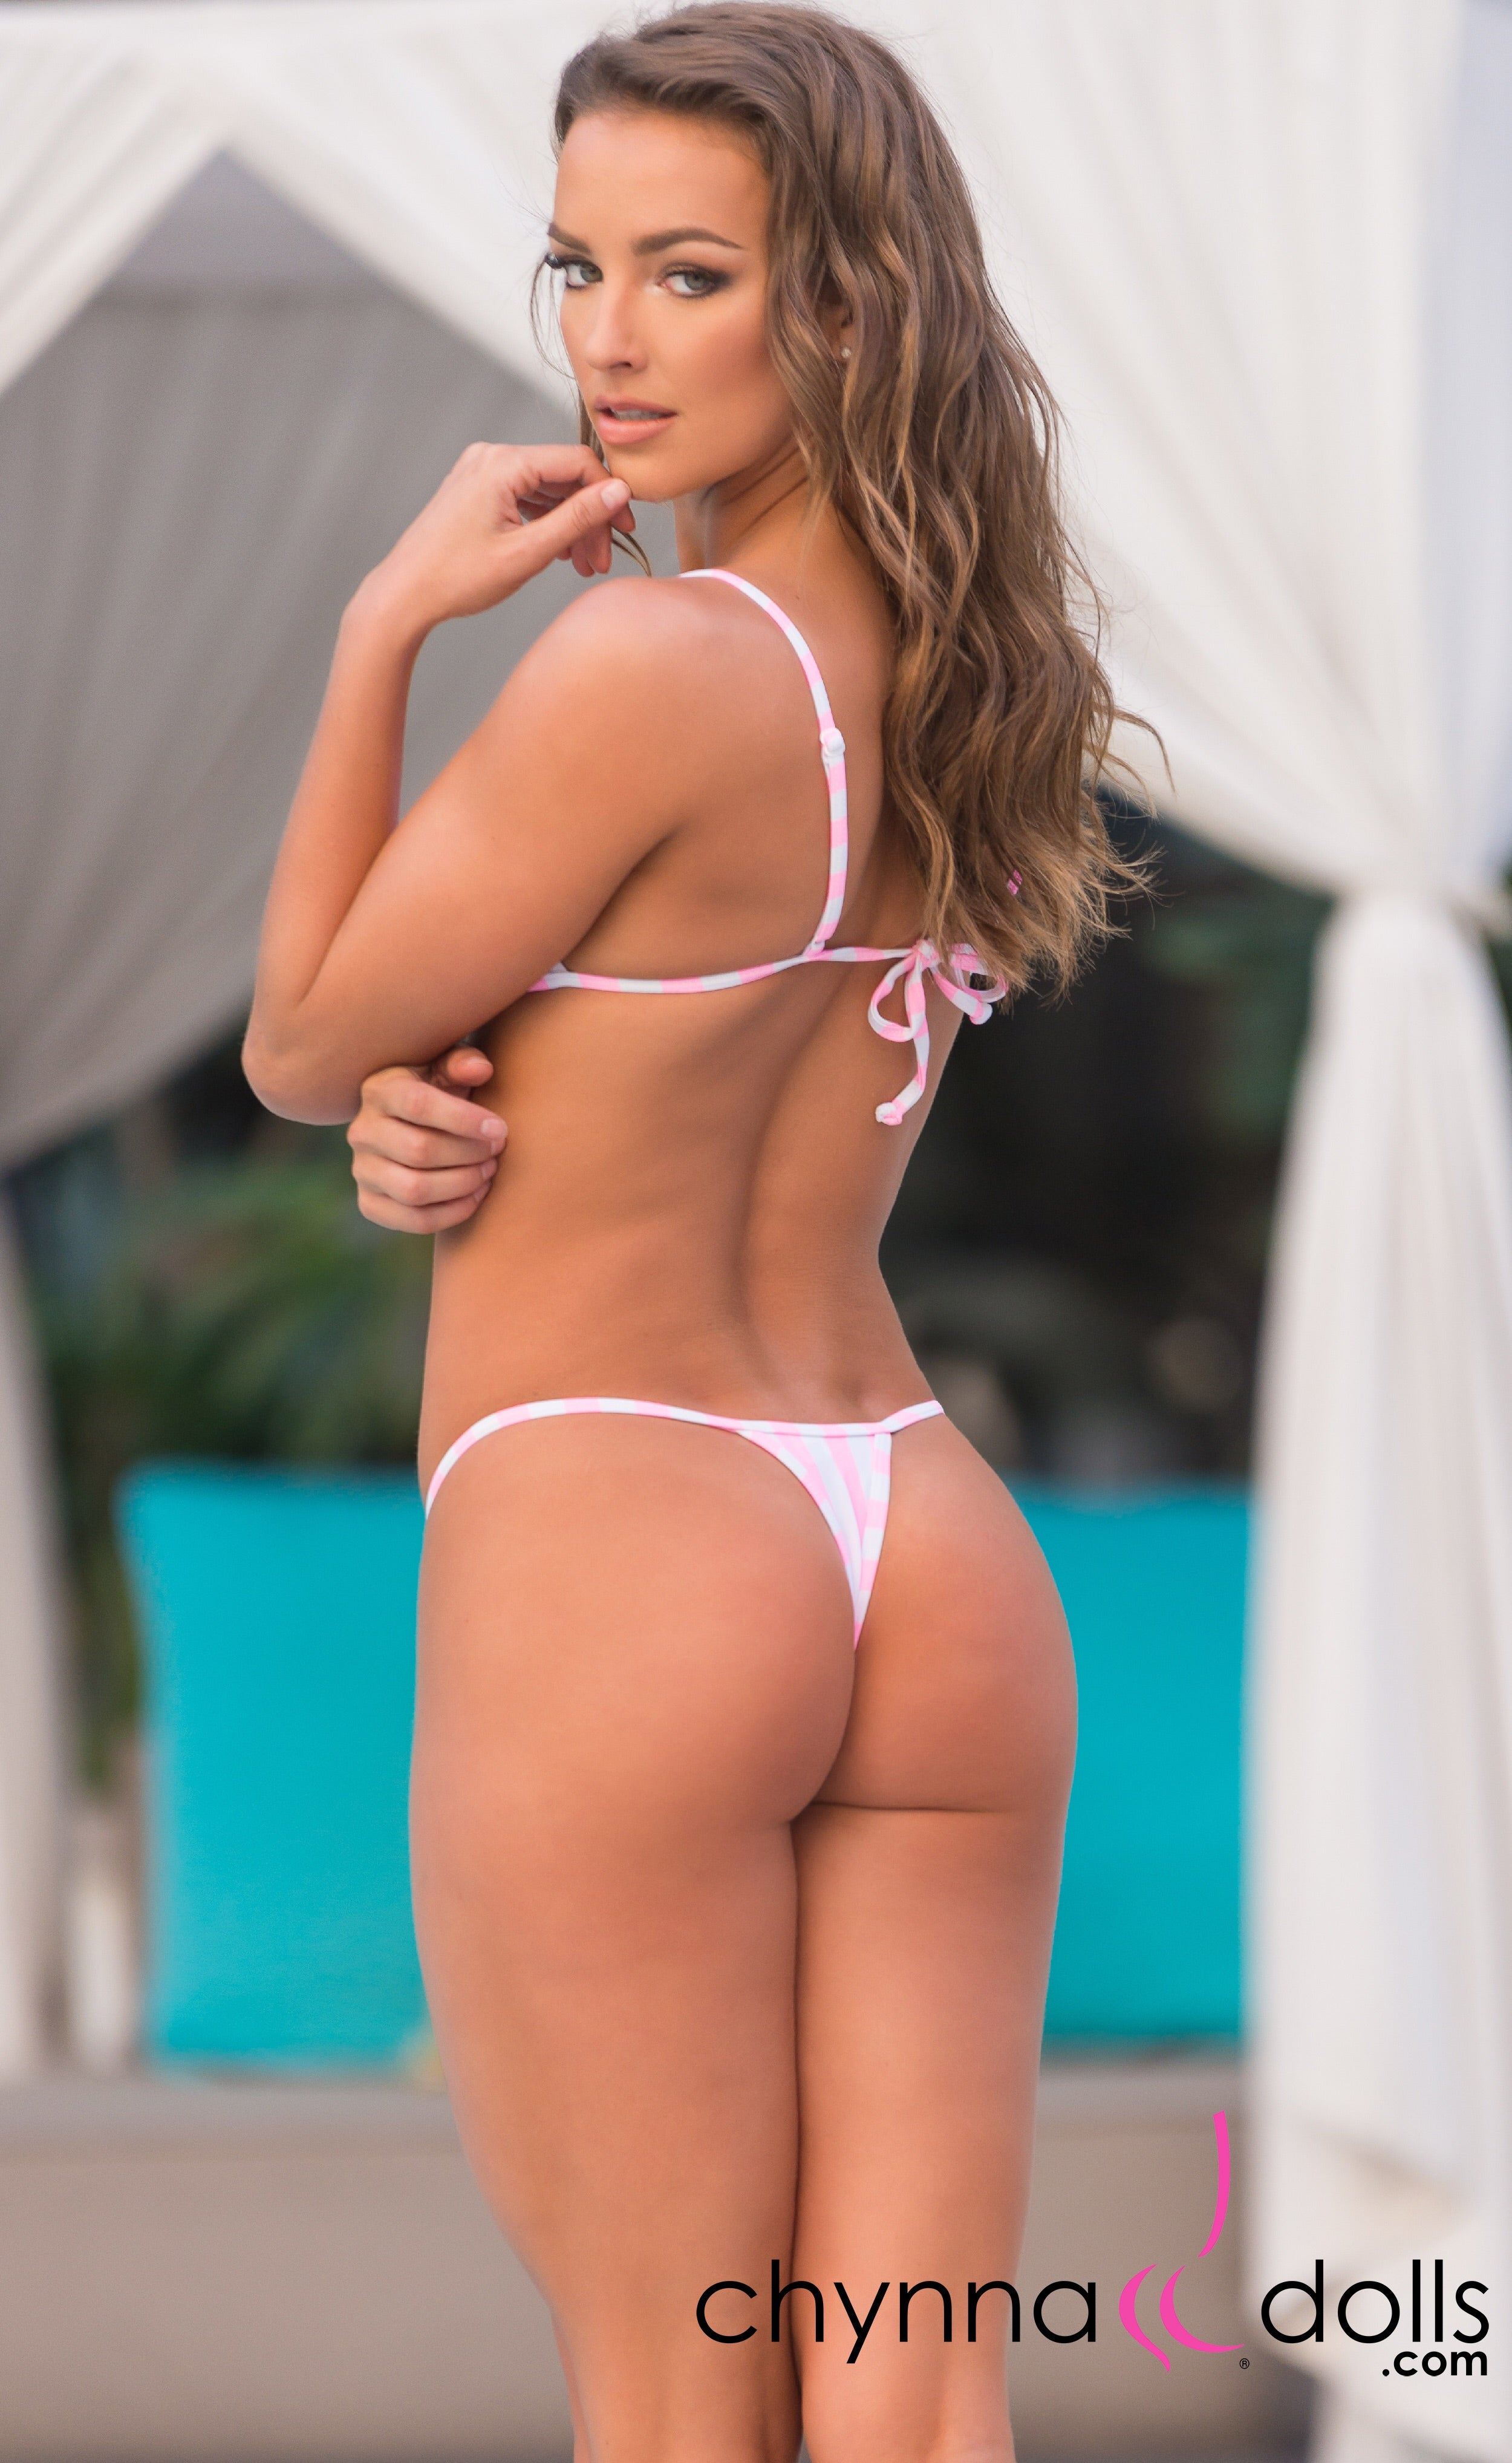 Rio: T-Back Thong Swimsuit in Pink and White Stripes - Chynna Dolls Swimwear